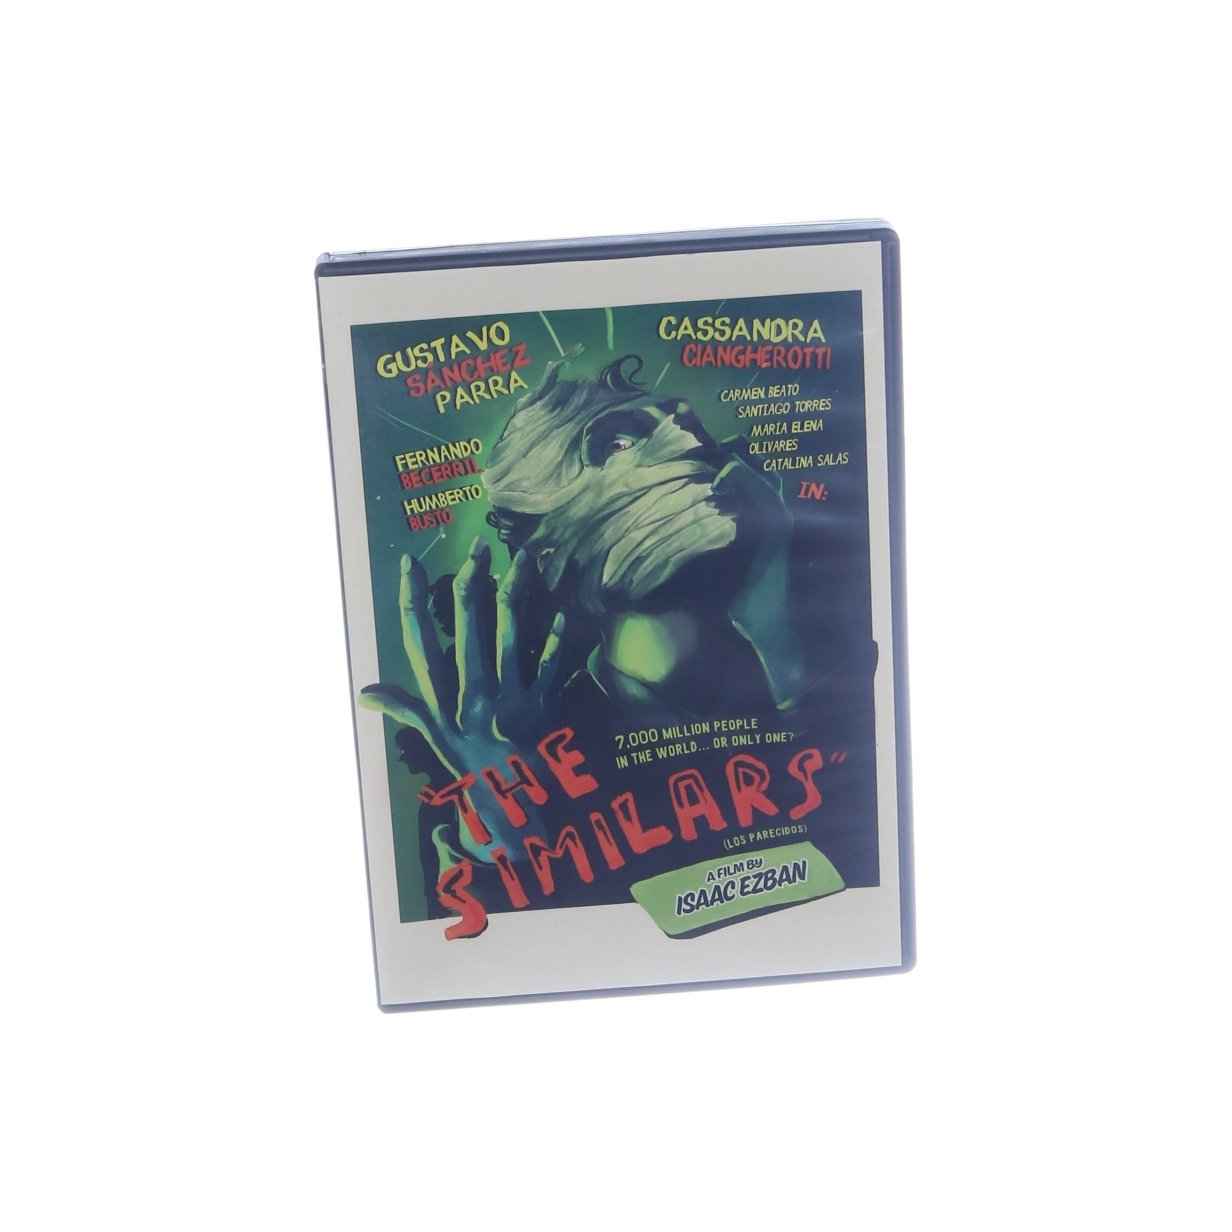 The Similars, Film, DVD, Thriller